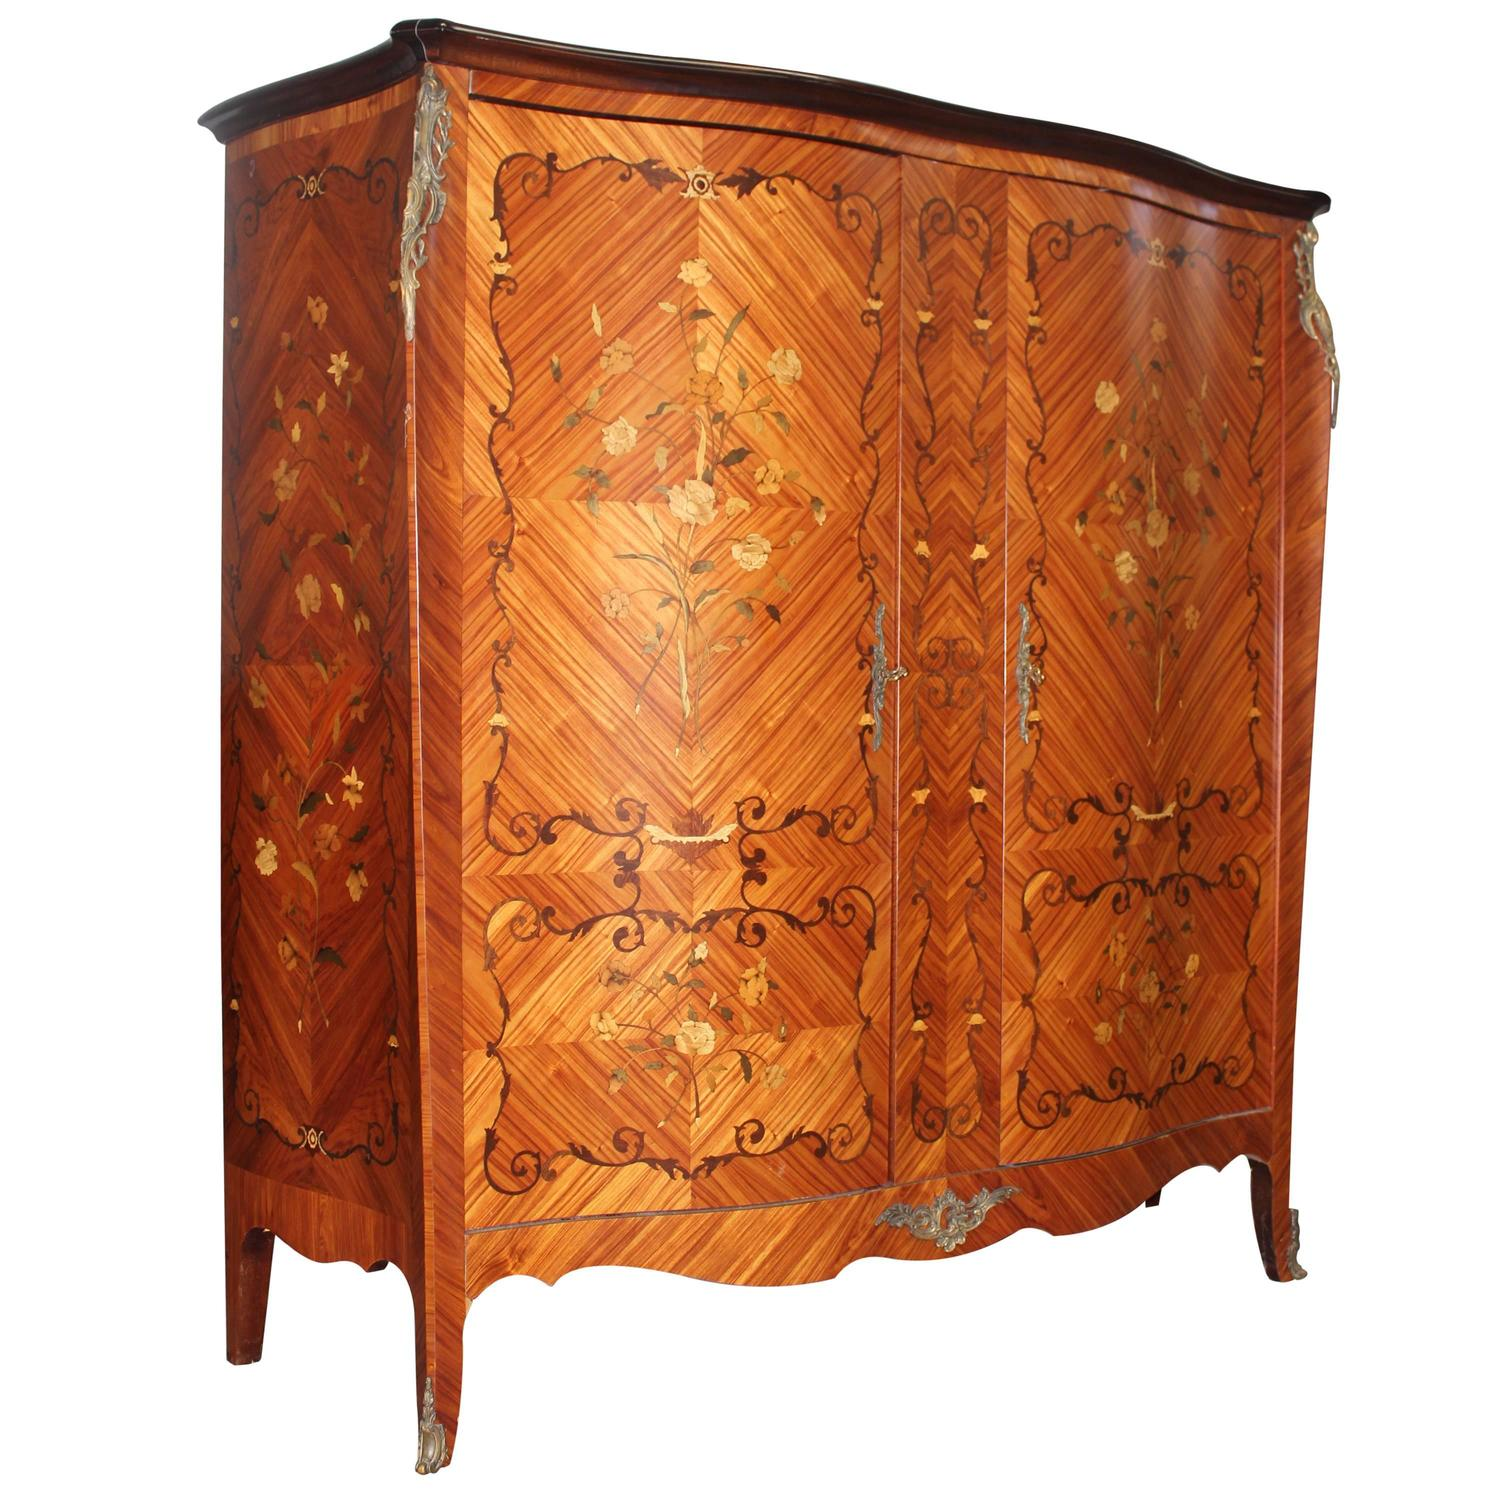 french art deco palisander grand armoire circa 1940s for sale at 1stdibs. Black Bedroom Furniture Sets. Home Design Ideas